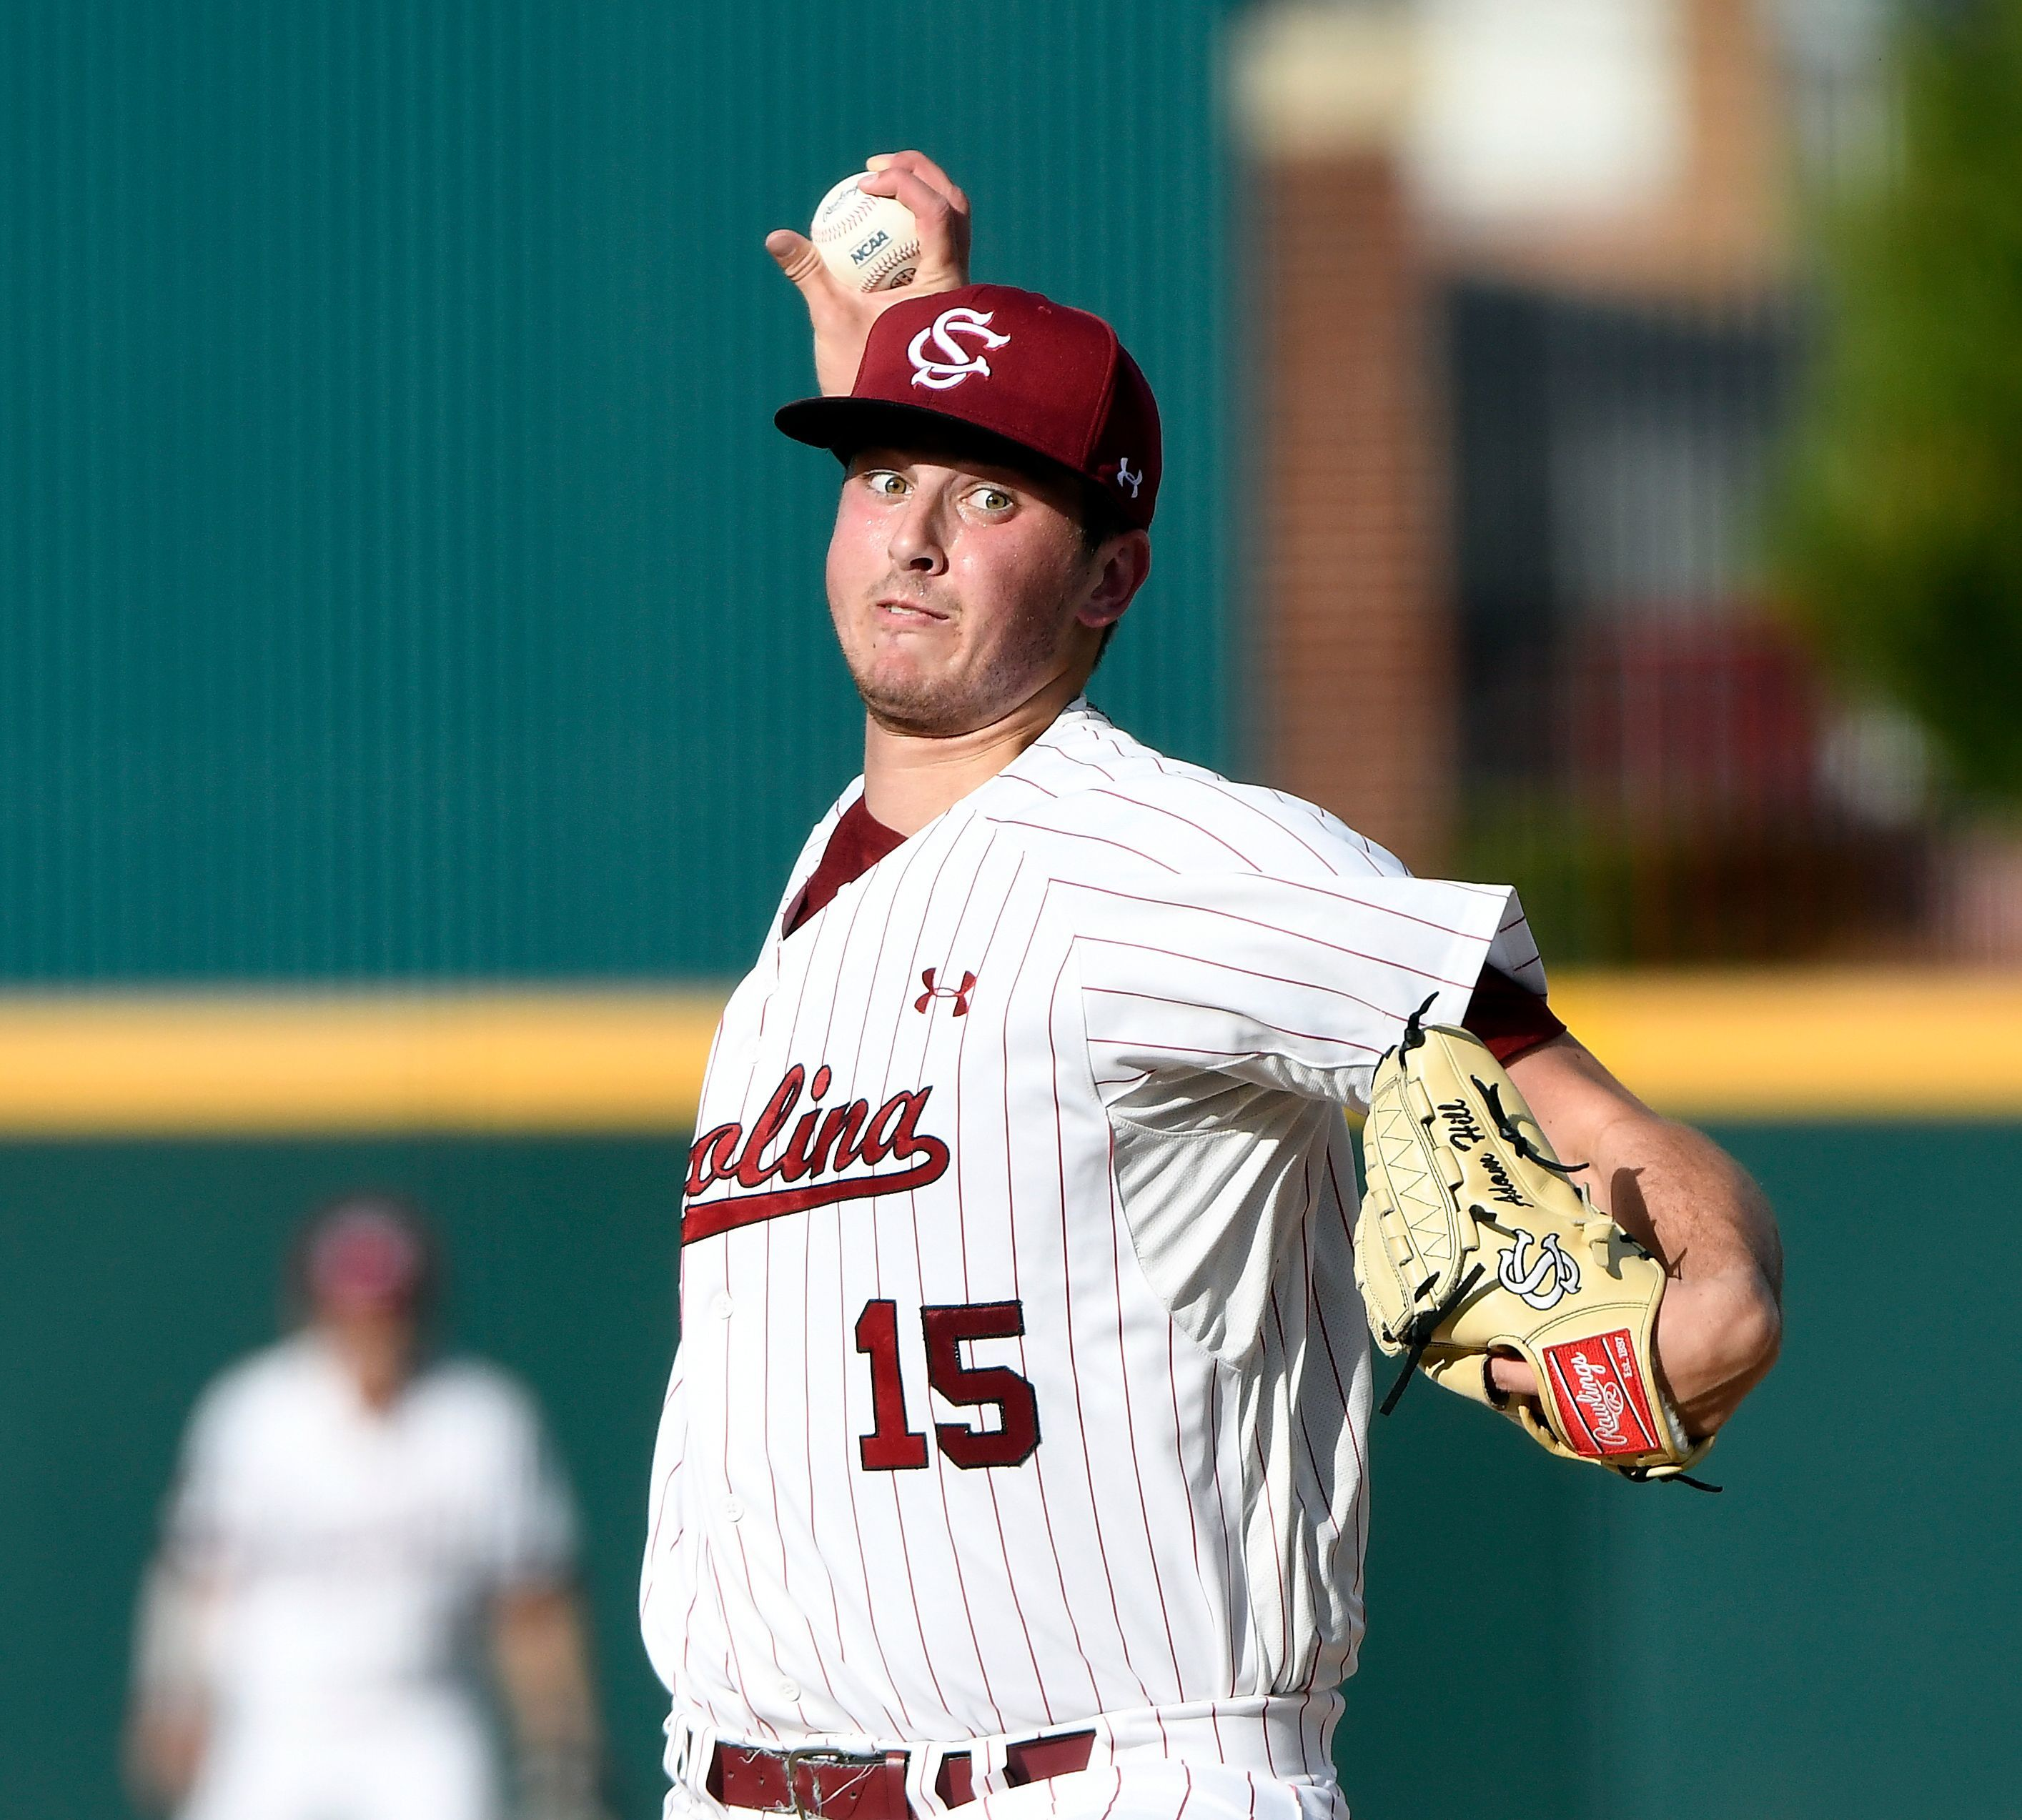 Timber Rattlers pitcher Adam Hill excited to make positive impression on new organization